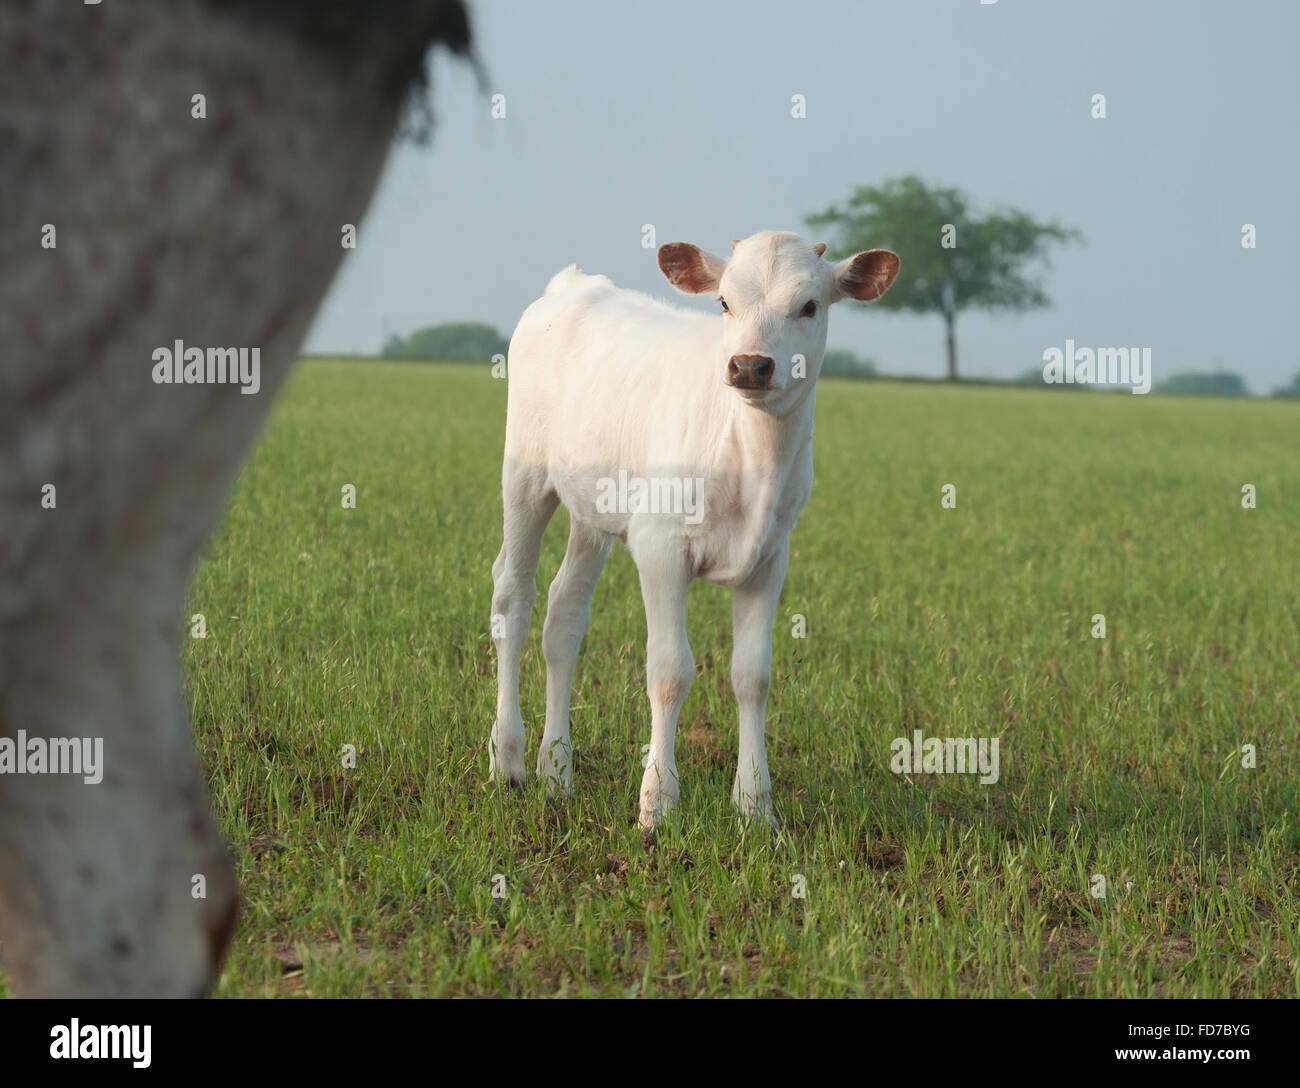 Texas longhorn cattle calf - Stock Image